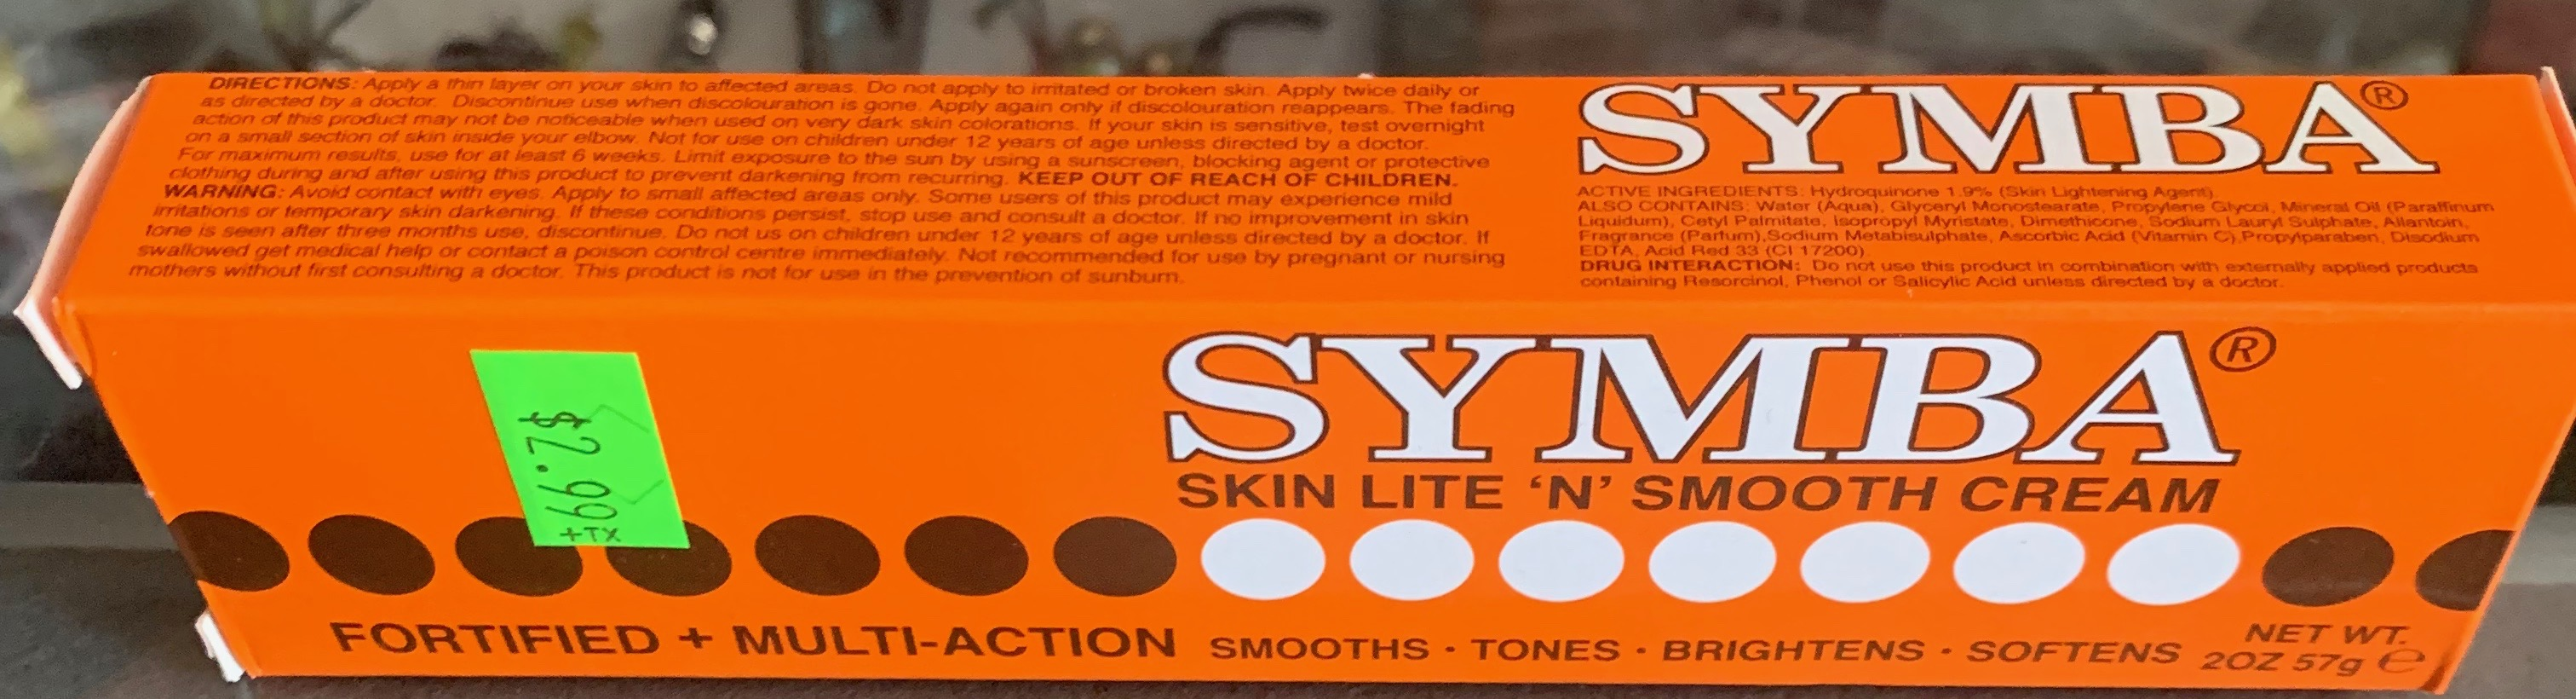 Symba Skin Lite 'N' Smooth Cream